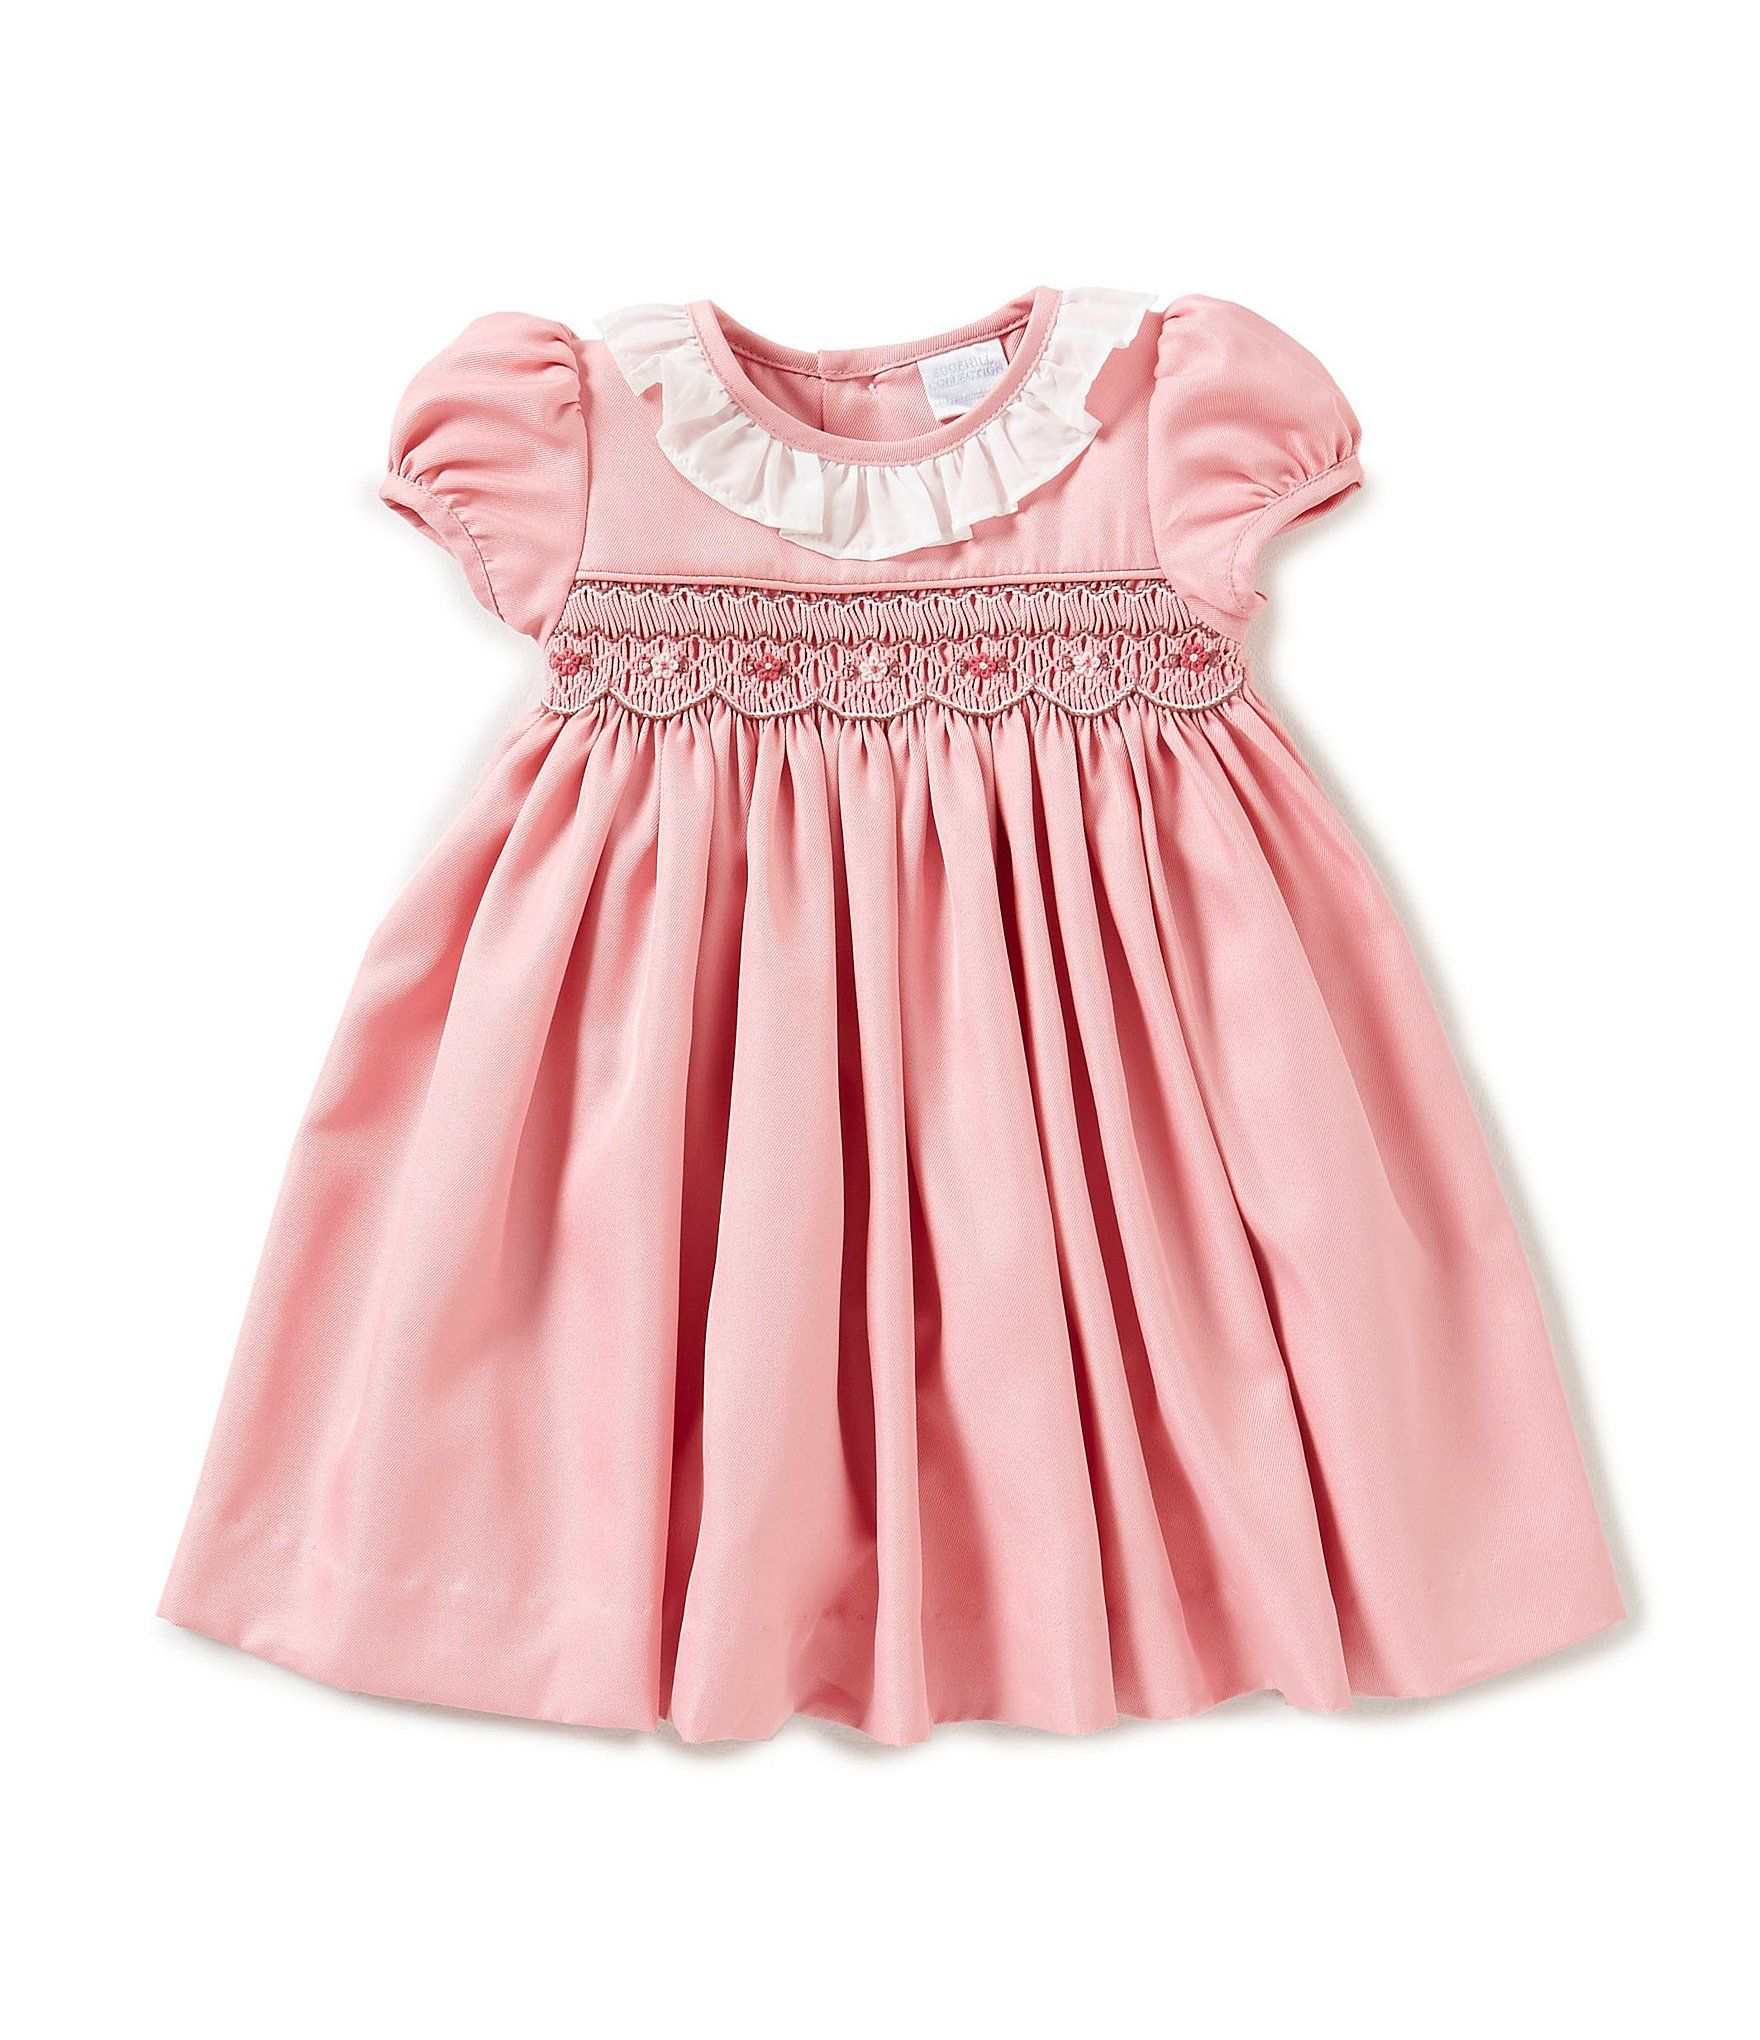 Shop for Edgehill Collection Baby Girls 3 24 Months Short Sleeve